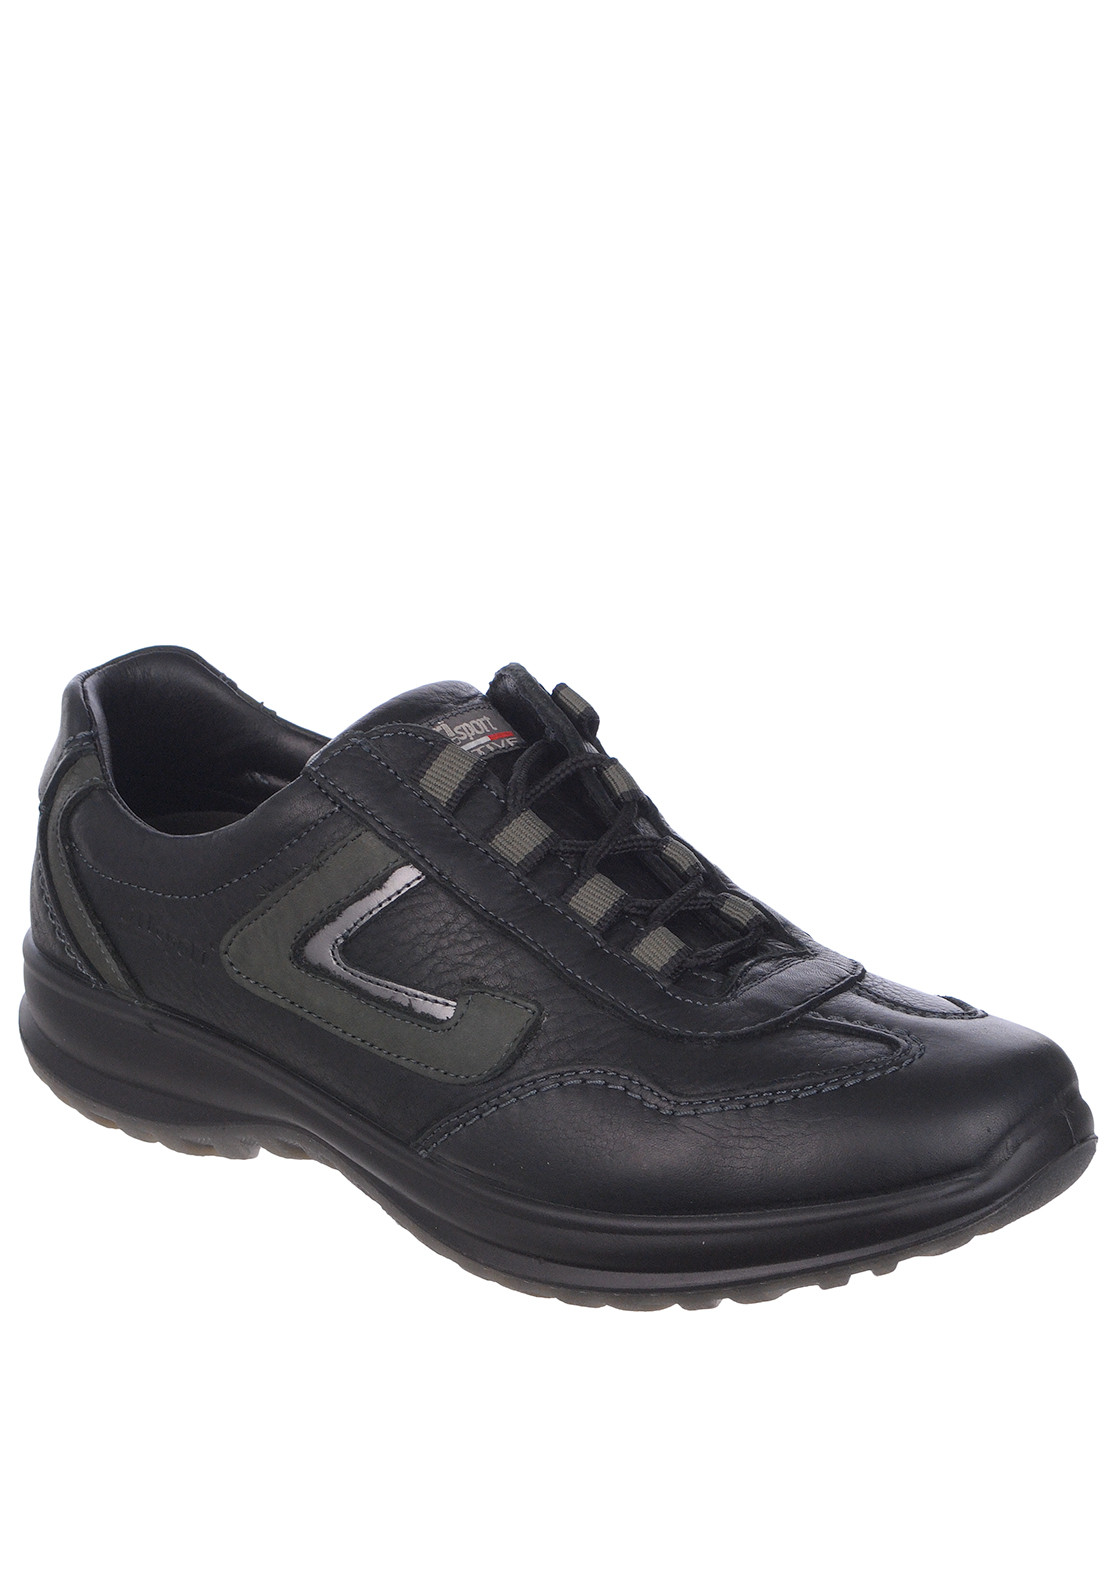 Grisport Mens Hamilton Leather Walking Shoe, Black